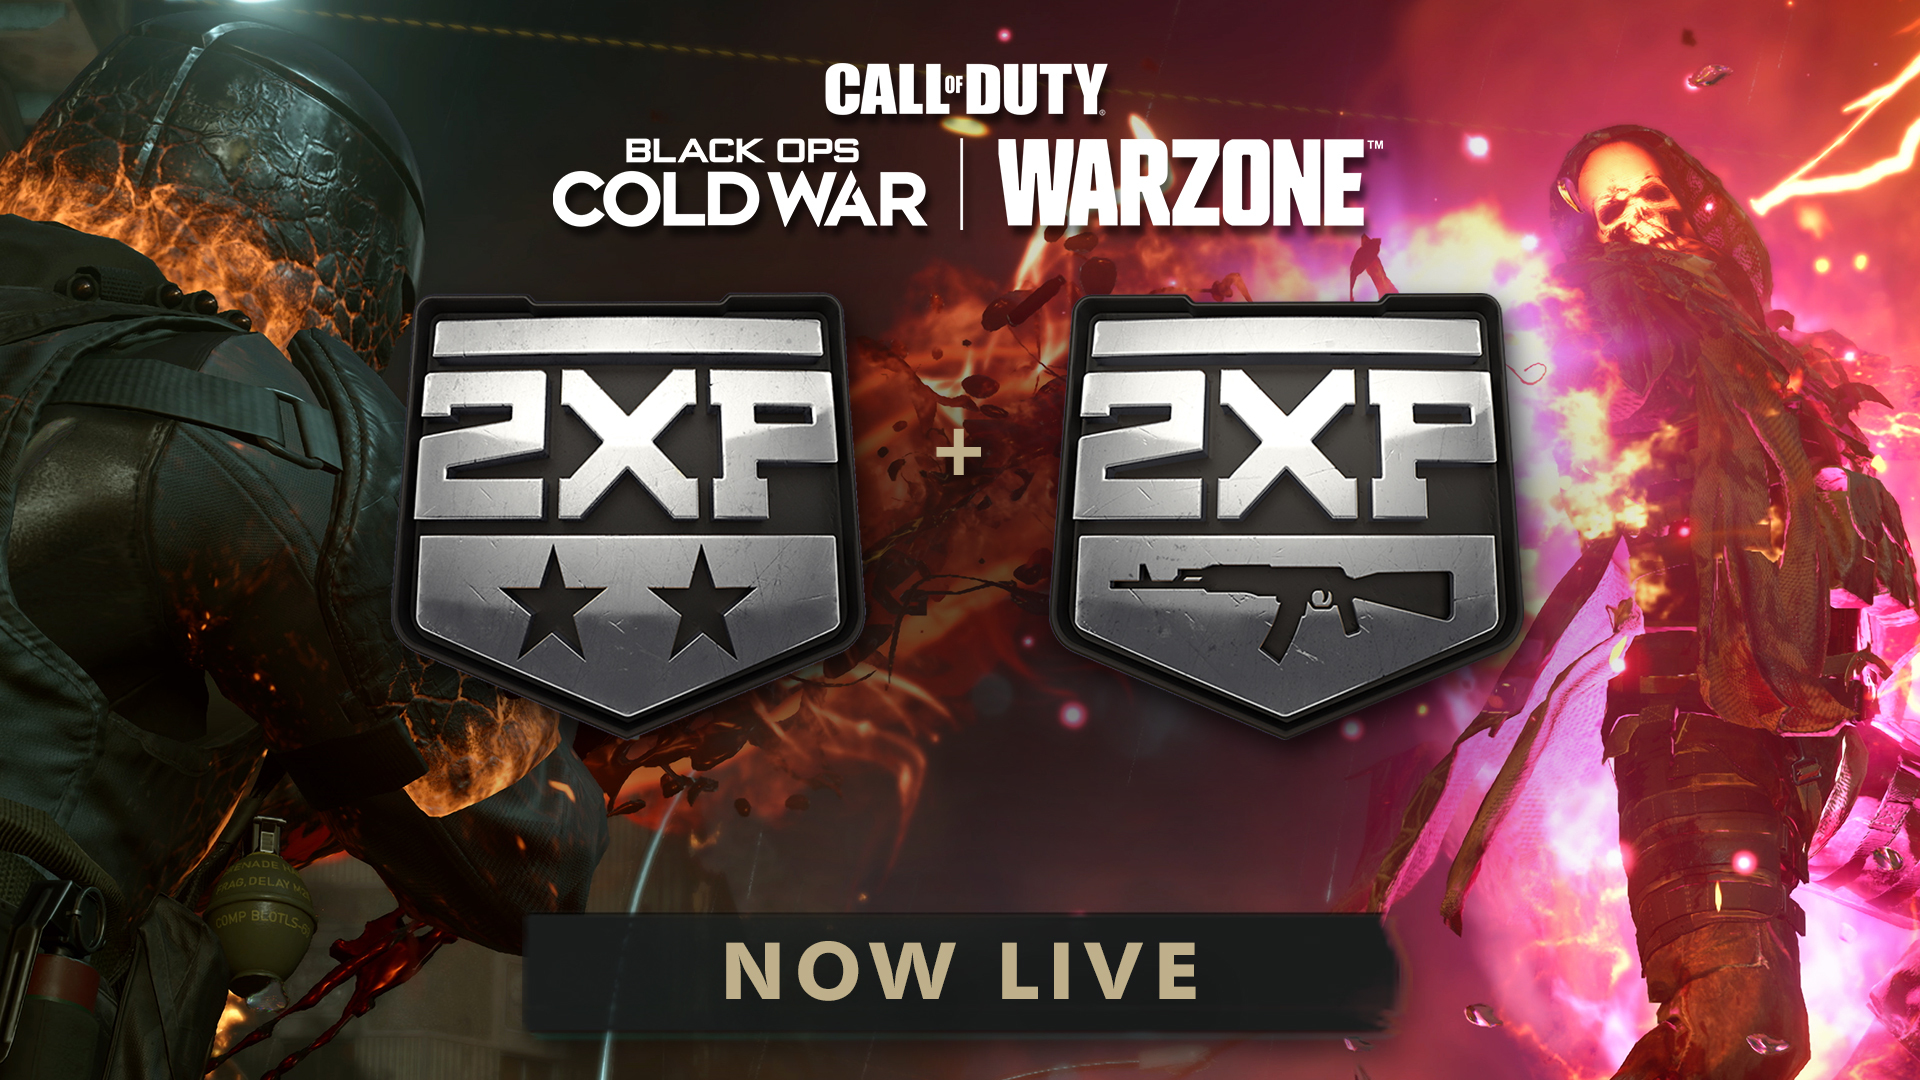 When Does Double XP End in Cold War and Warzone? (July 19, 2021)